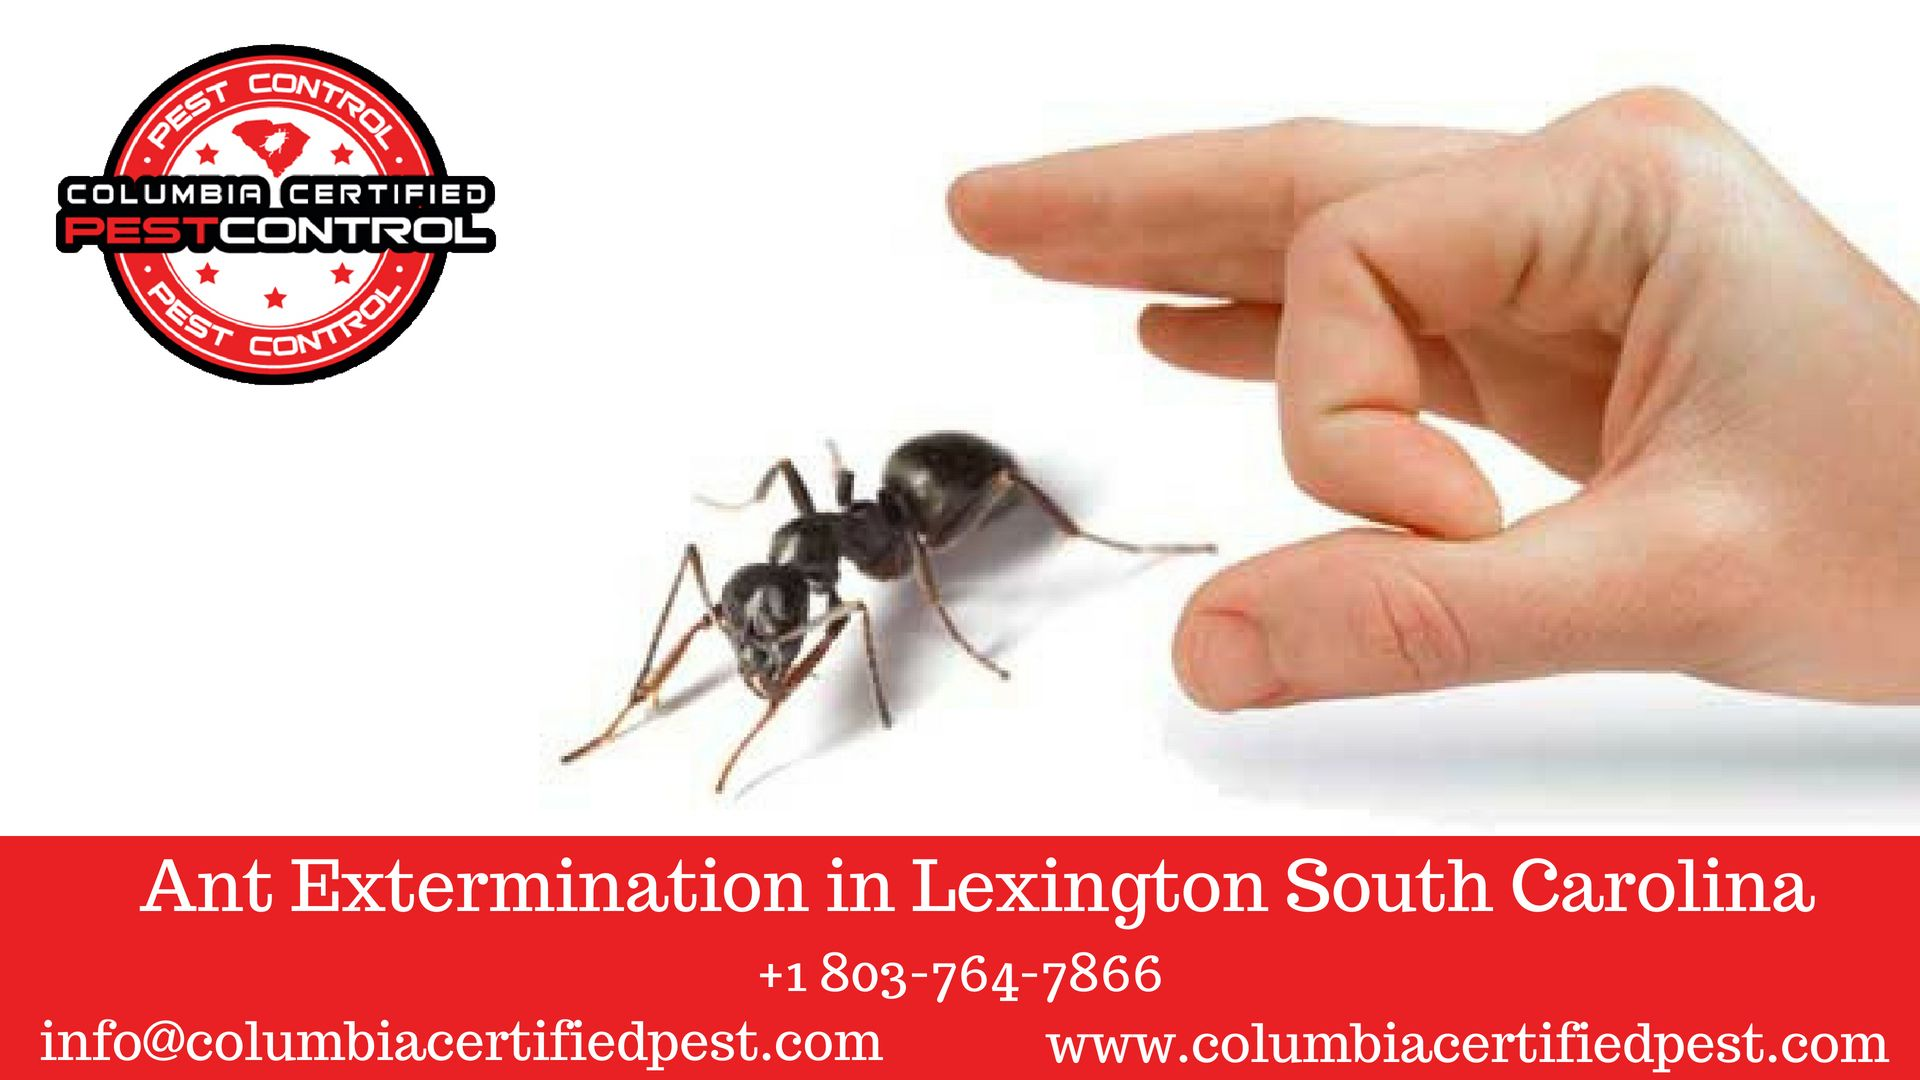 Ant Extermination In Lexington South Carolina Call 1 803 764 7866 Ant Pest Control Fire Ants Ants